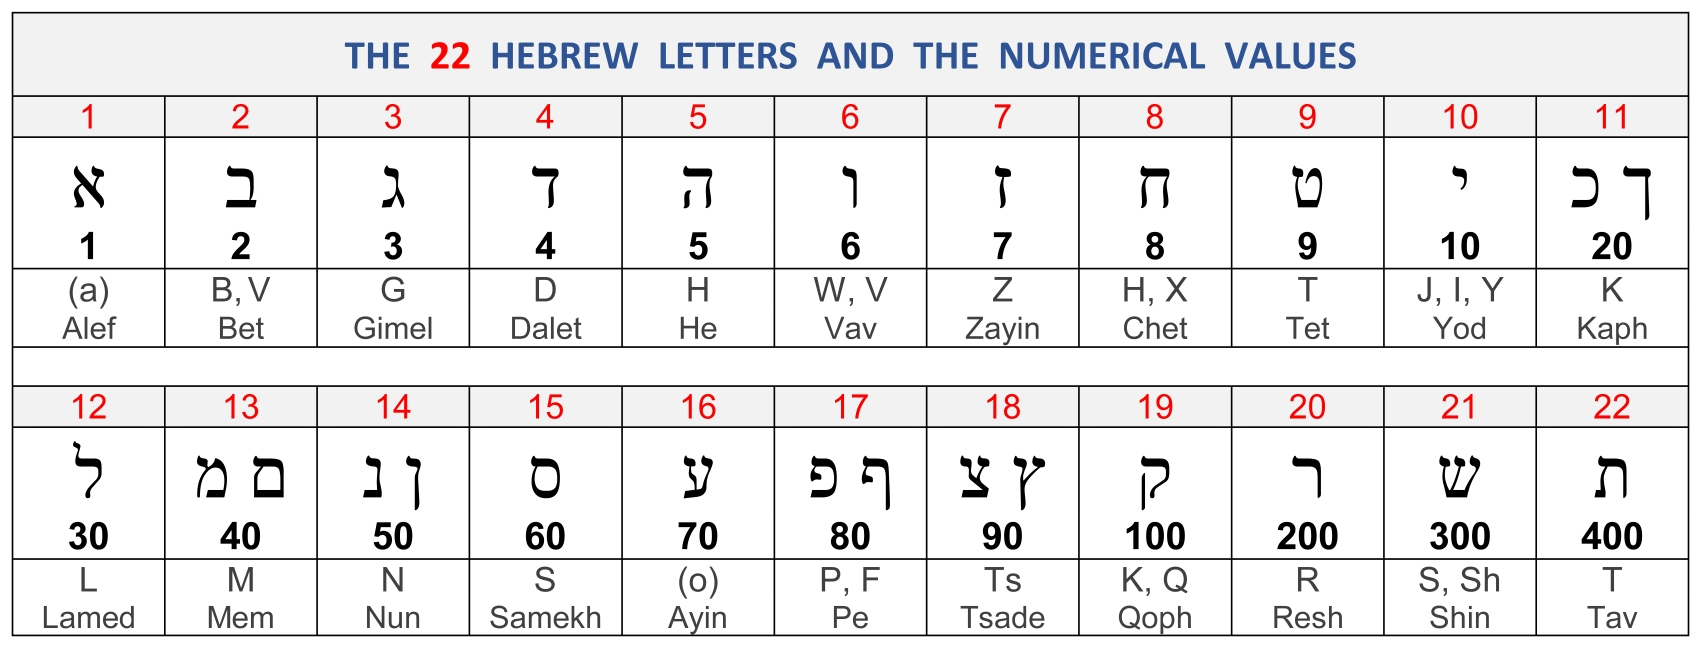 Hebrew and Greek Alphabet and Numerical Values - Divisions Structure Bible Menorah